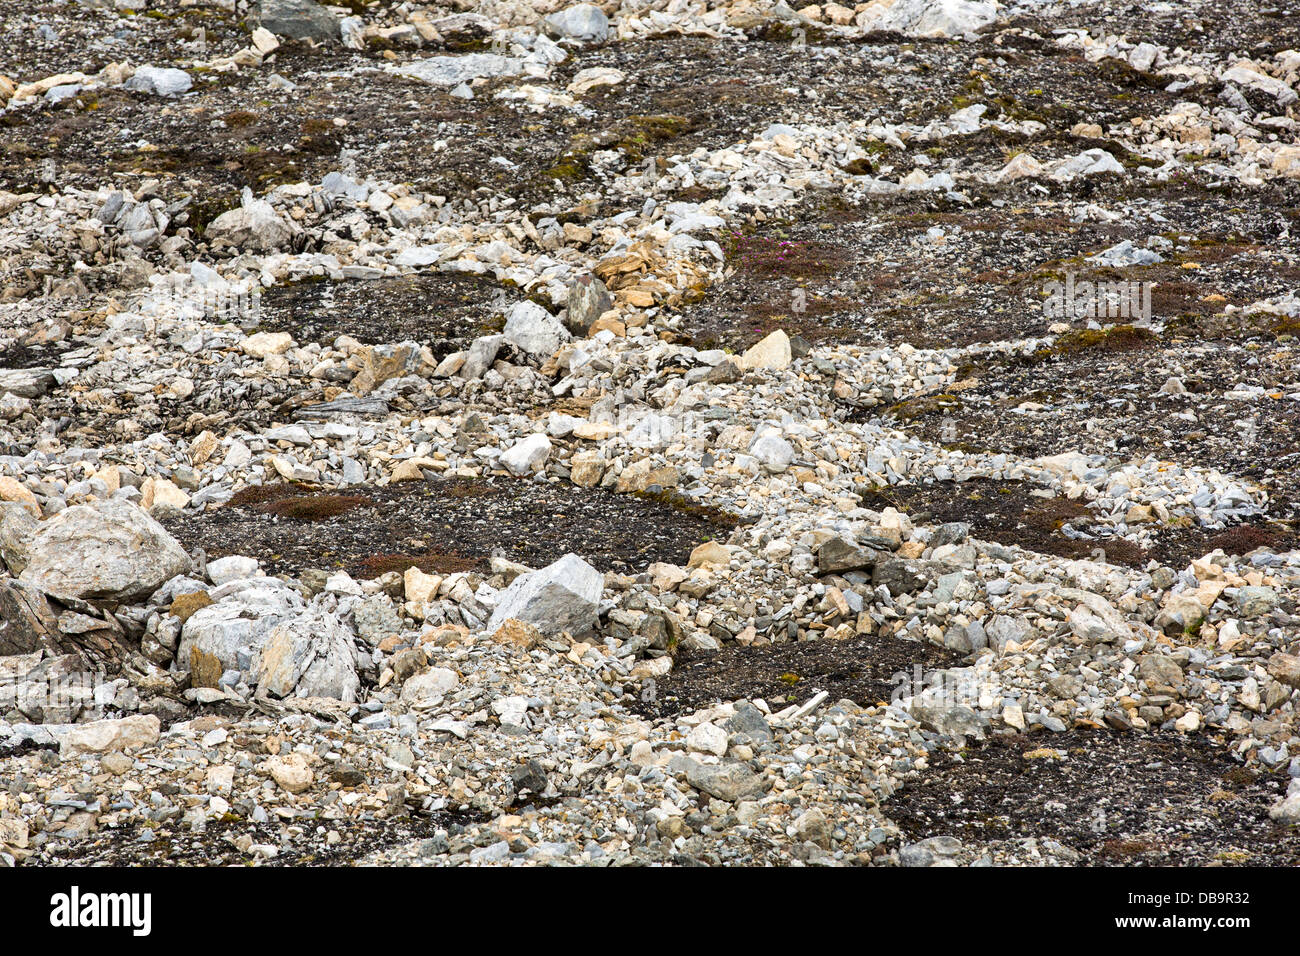 Patterned ground and stone circles formed above permafrost in the high Arctic on Spitsbergen, Svalbard. - Stock Image